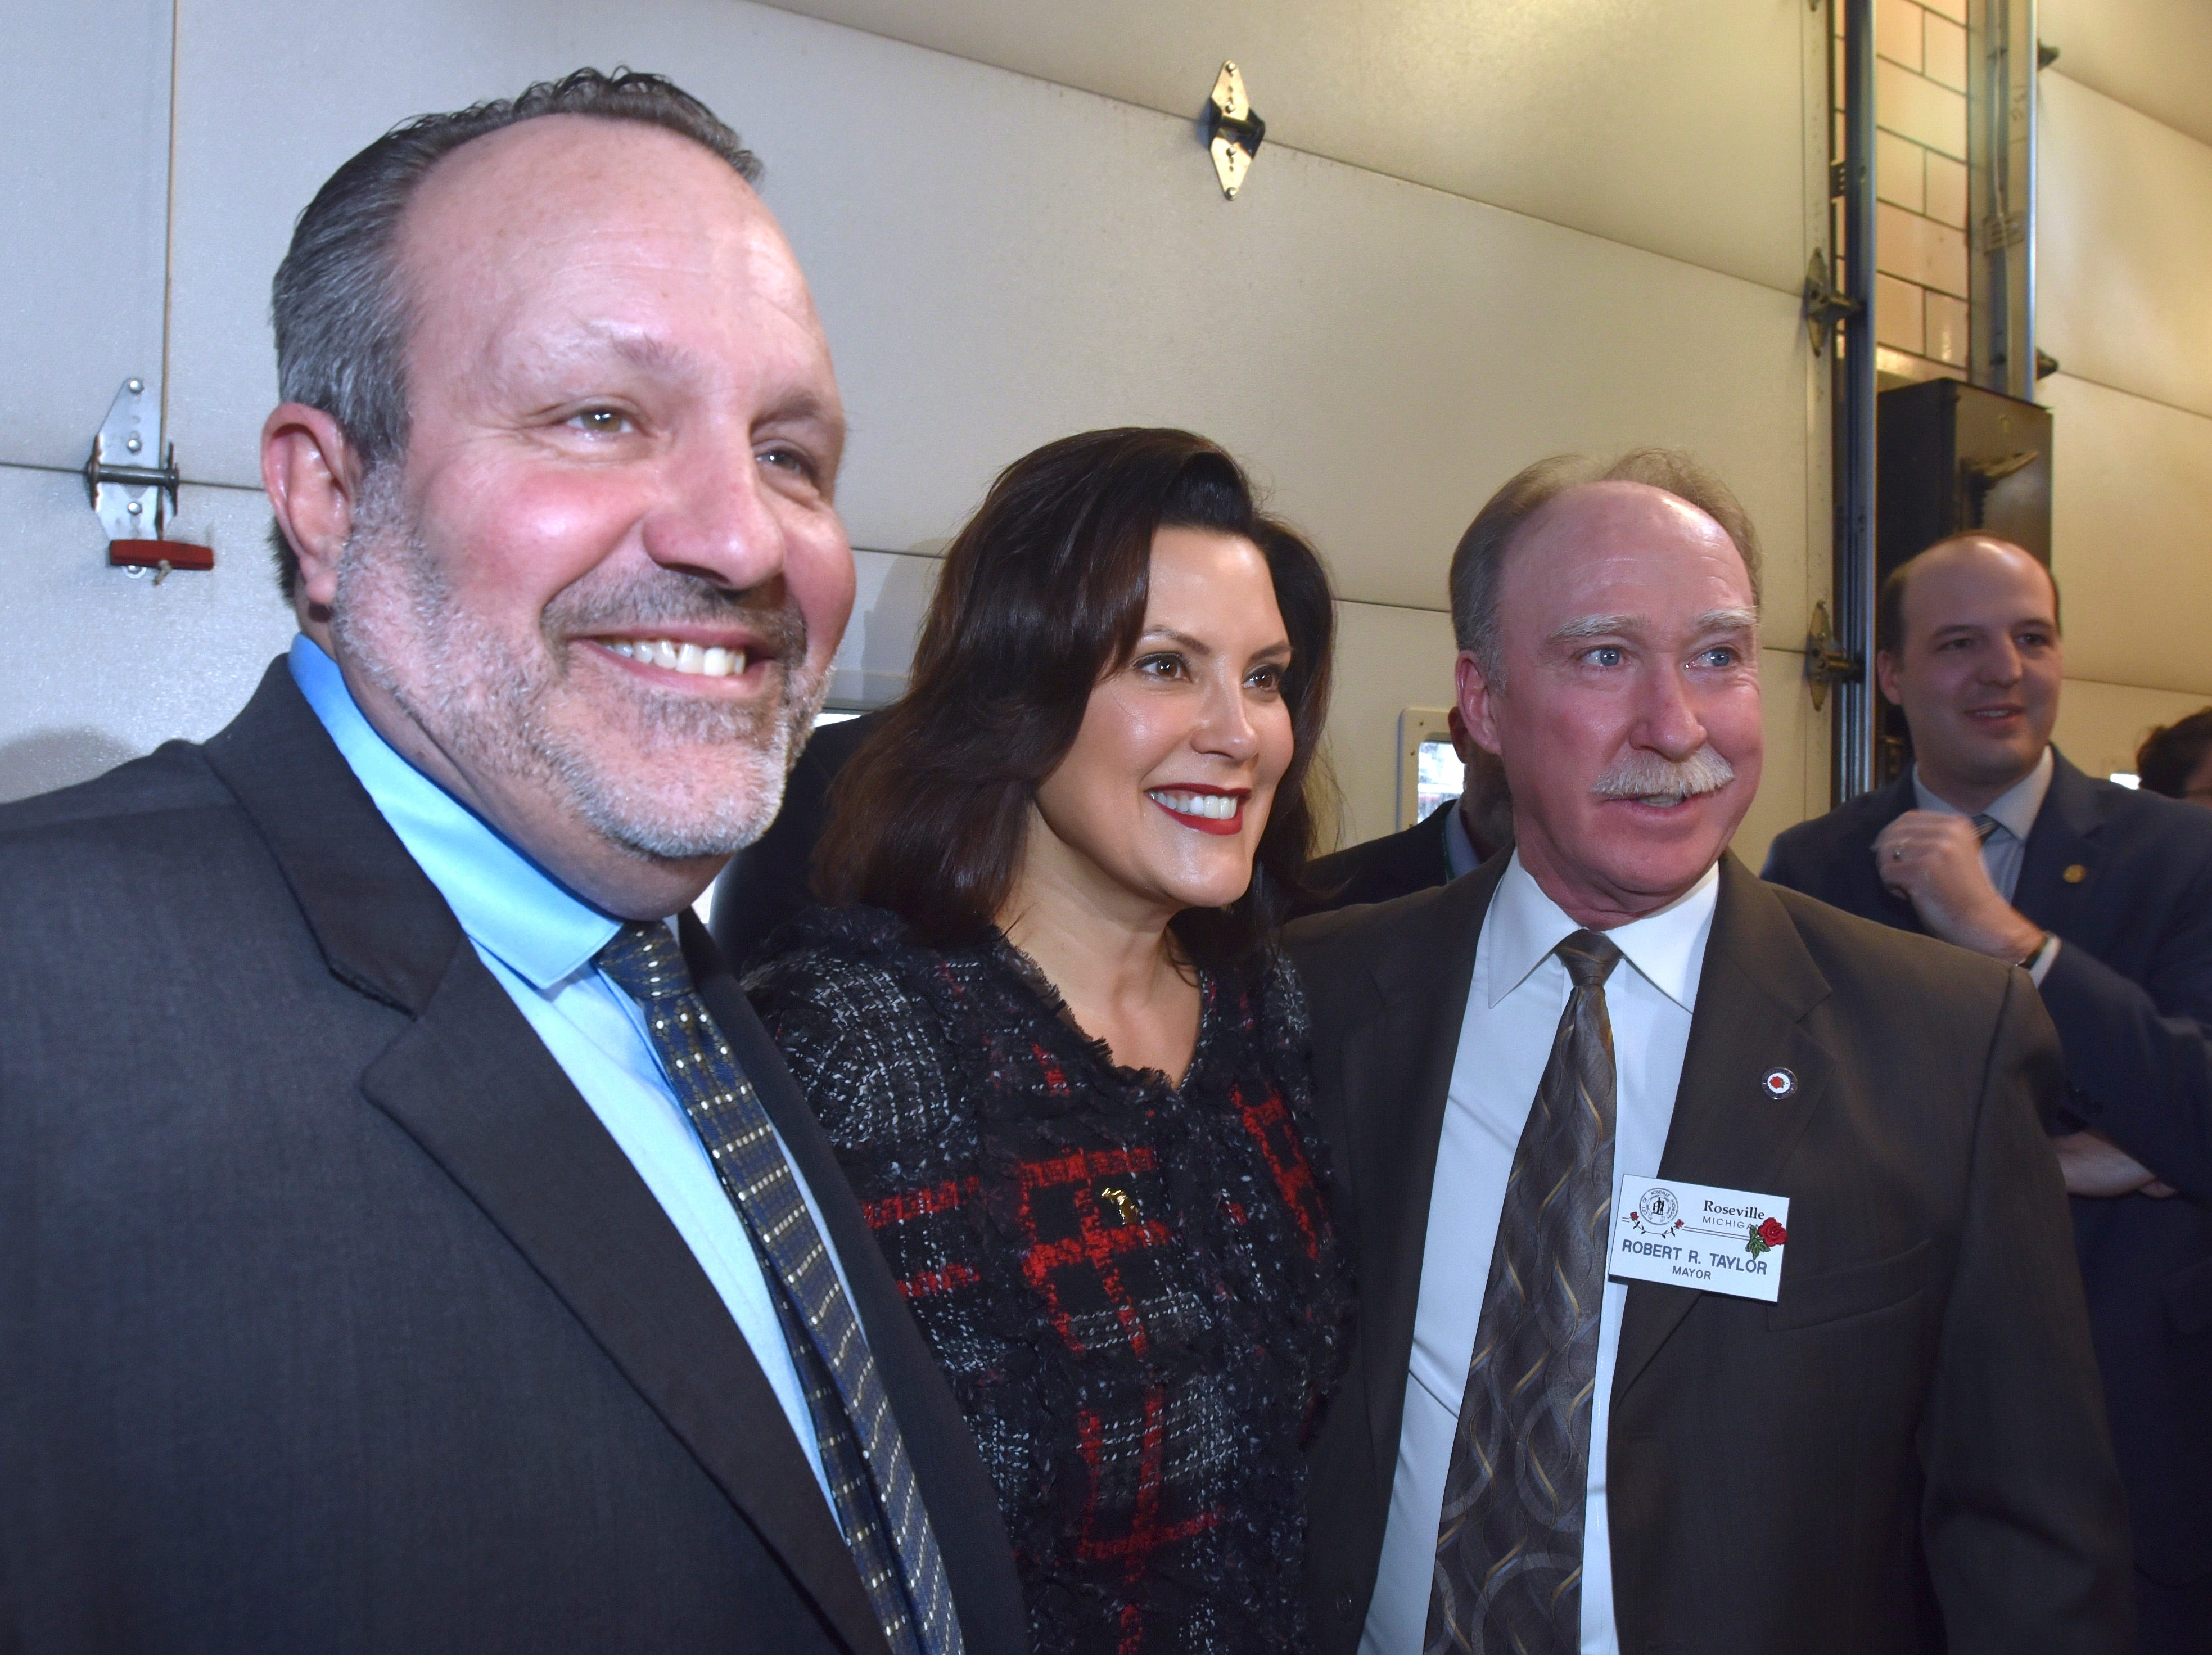 Center Line Mayor Robert Binson, left, and Roseville Mayor Robert Taylor, right, pose with Michigan Governor Gretchen Whitmer, center, after the press conference.